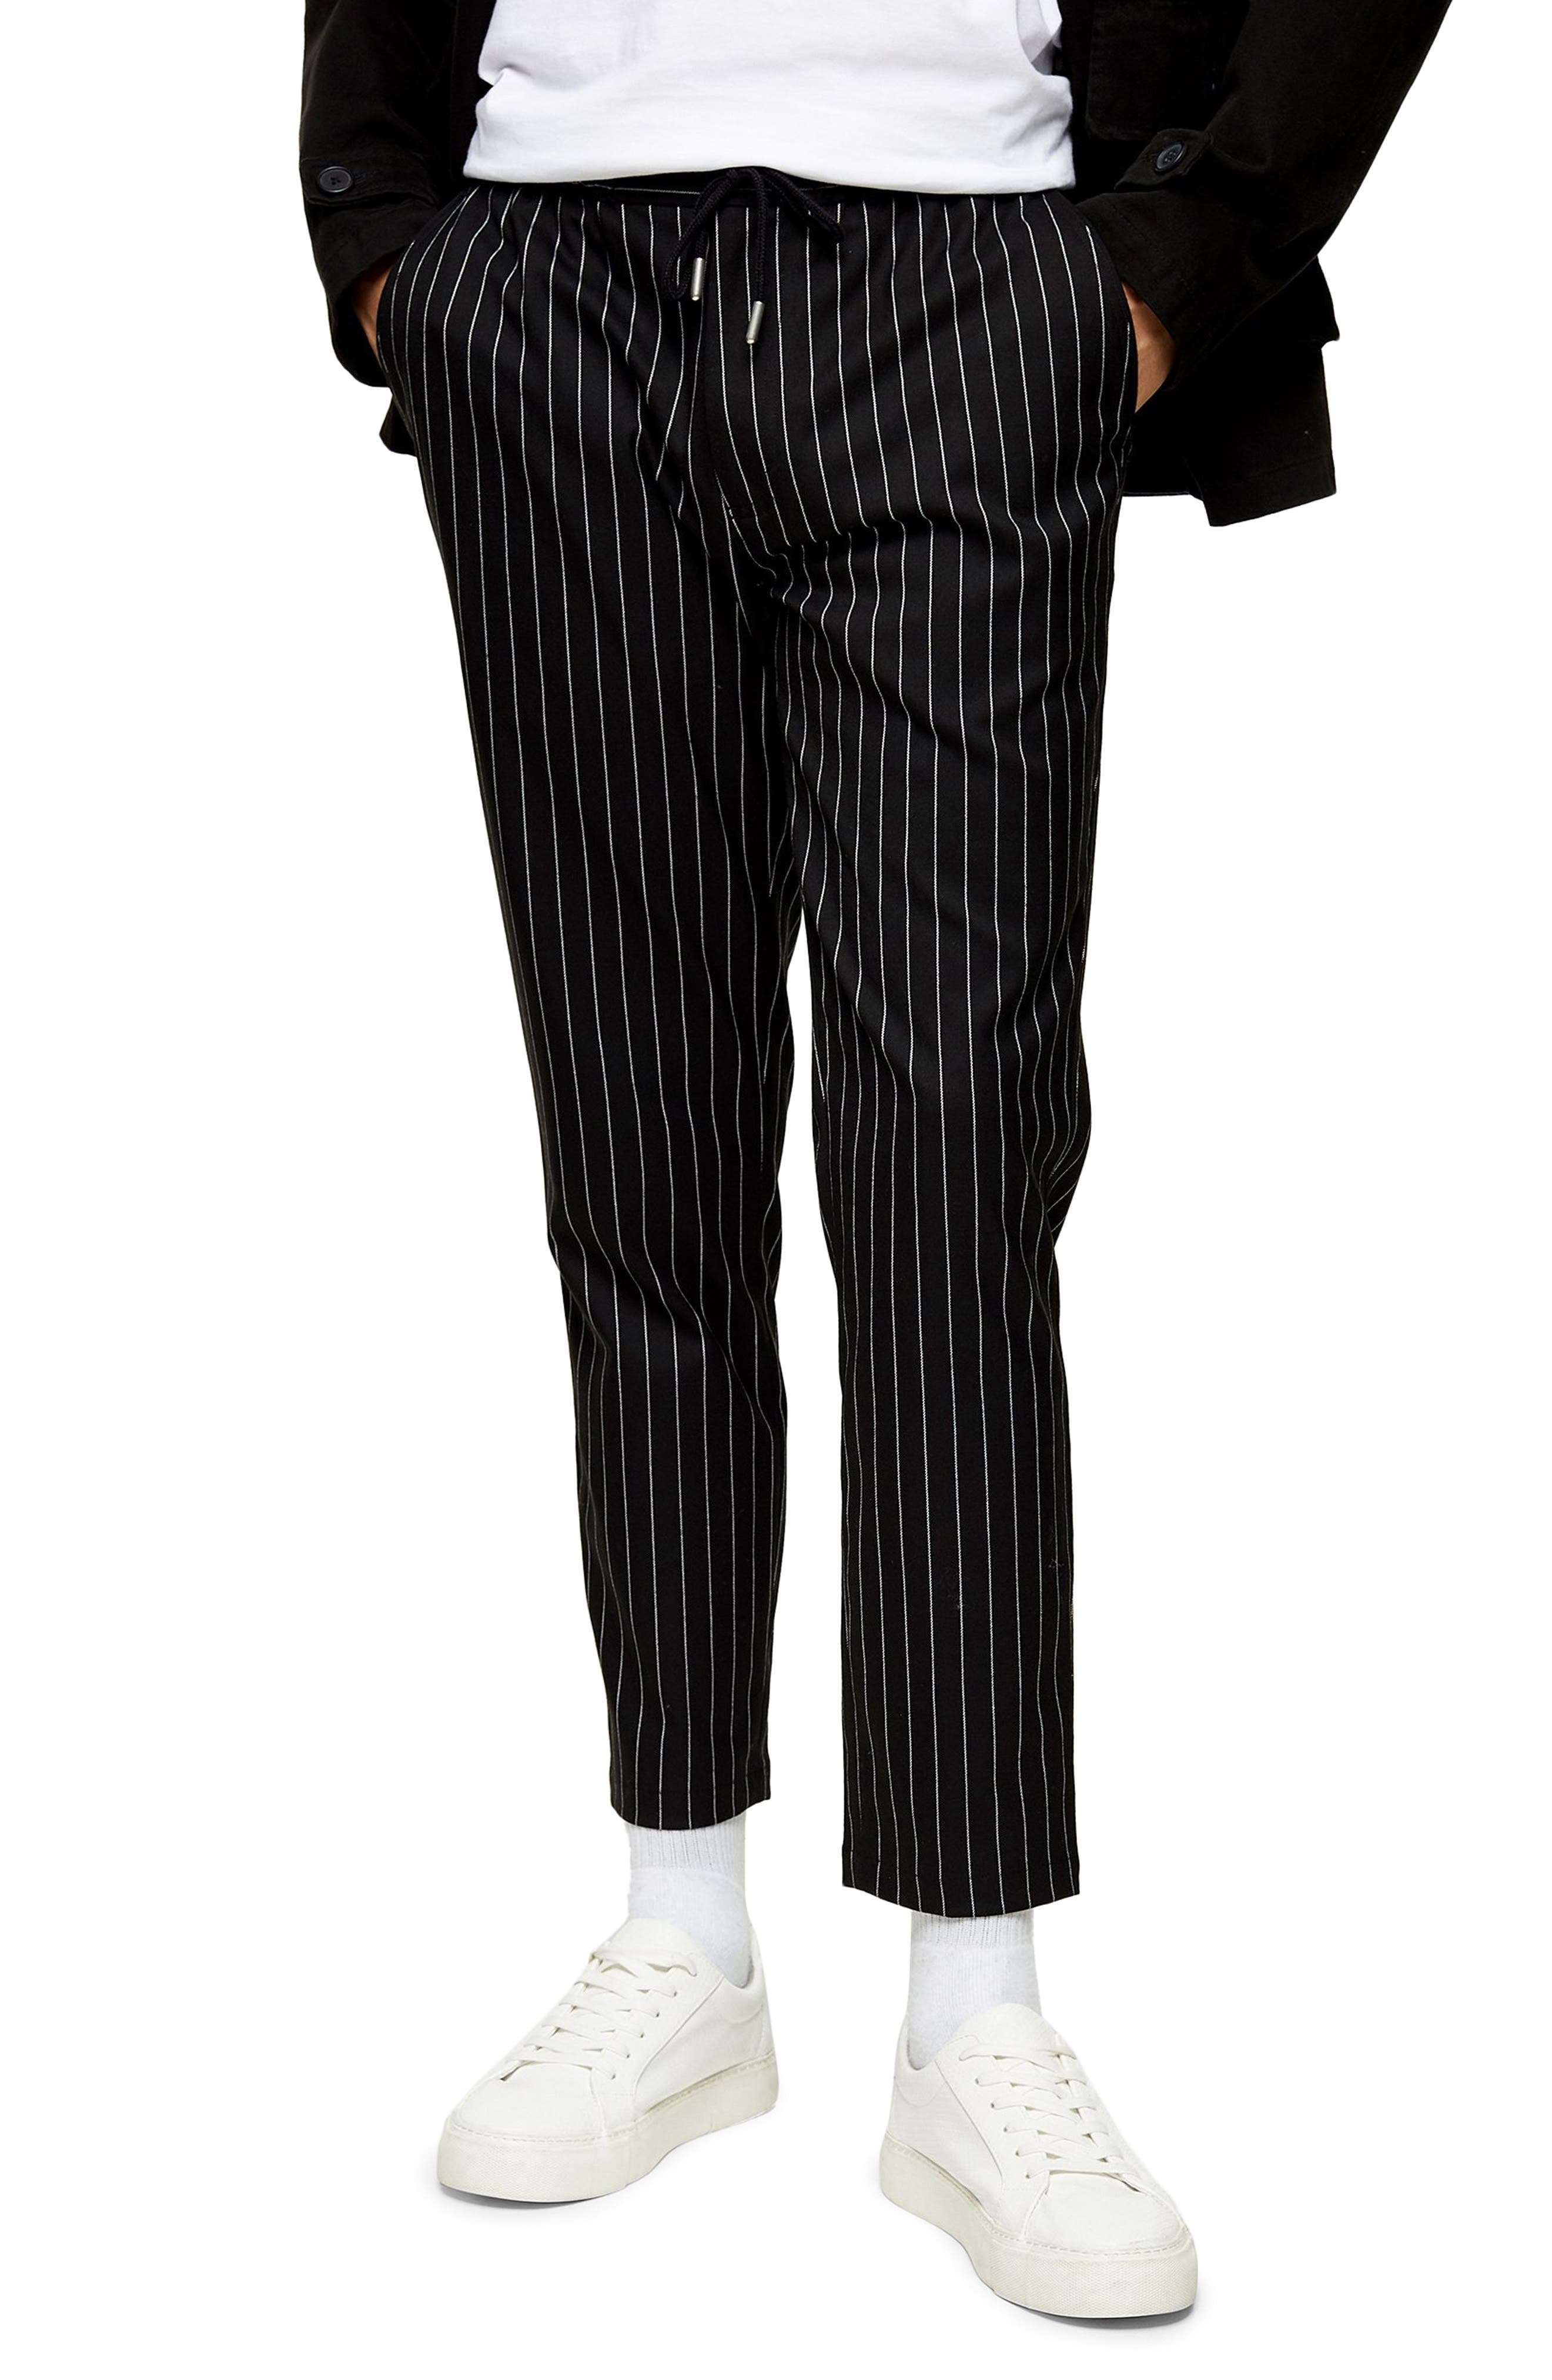 Classic pinstripes cover these modern, slim-fitting cropped pants that work from 9-to-5 and beyond. Style Name: Topman Whyatt Stripe Trousers. Style Number: 6053340. Available in stores.